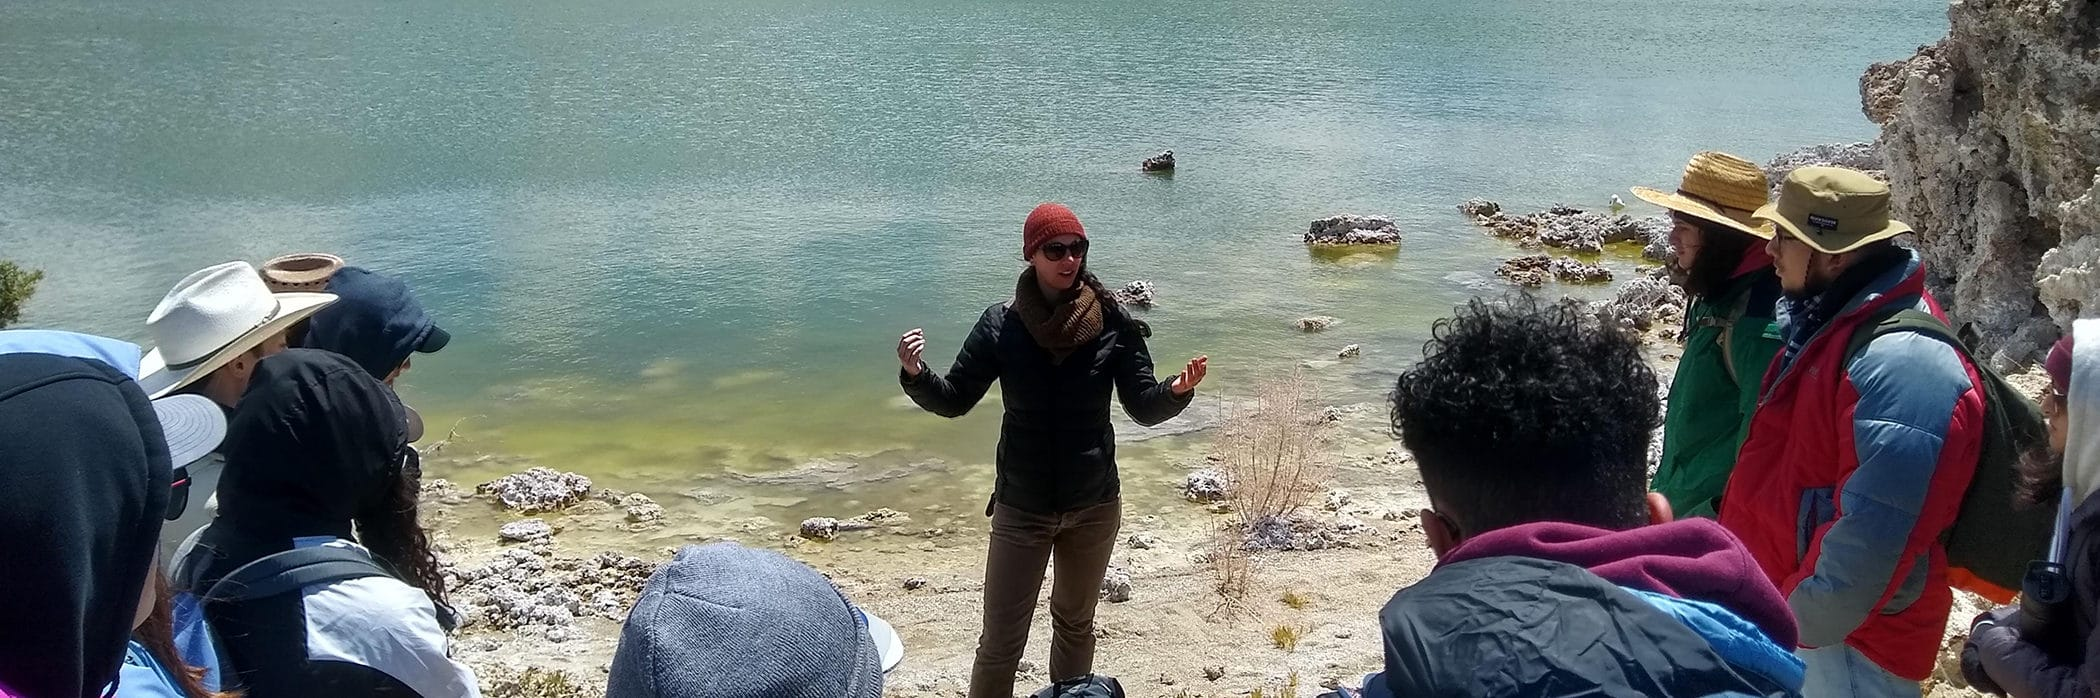 Eleven people gather around a woman giving a tour at the shore of Mono Lake with the lake water in the background and the tour participants bundled up in warm outdoor gear.